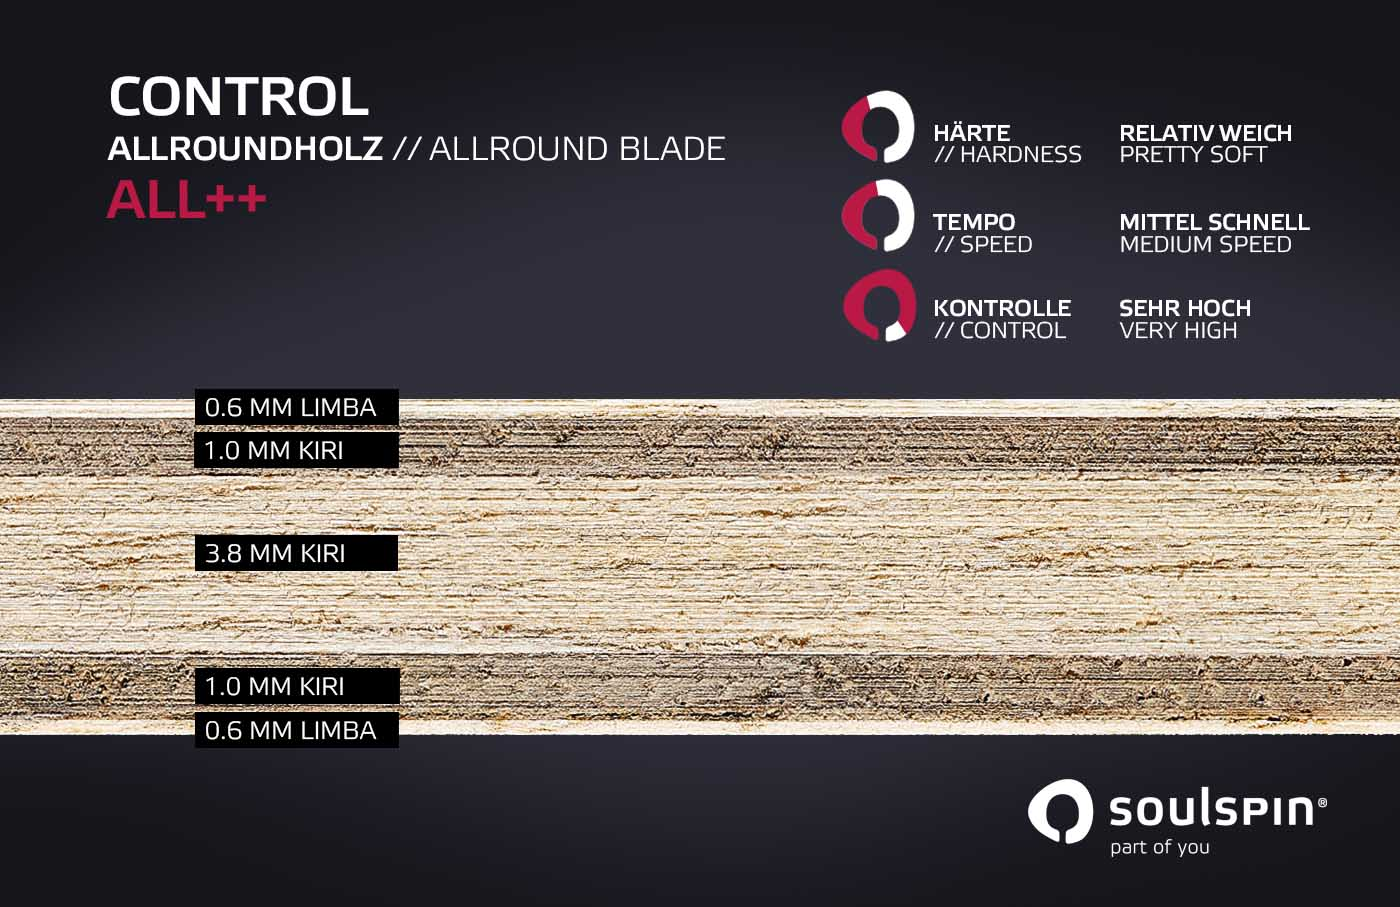 Cross section and veneer structure of easy to control all-round blade made in Germany by Soulspin